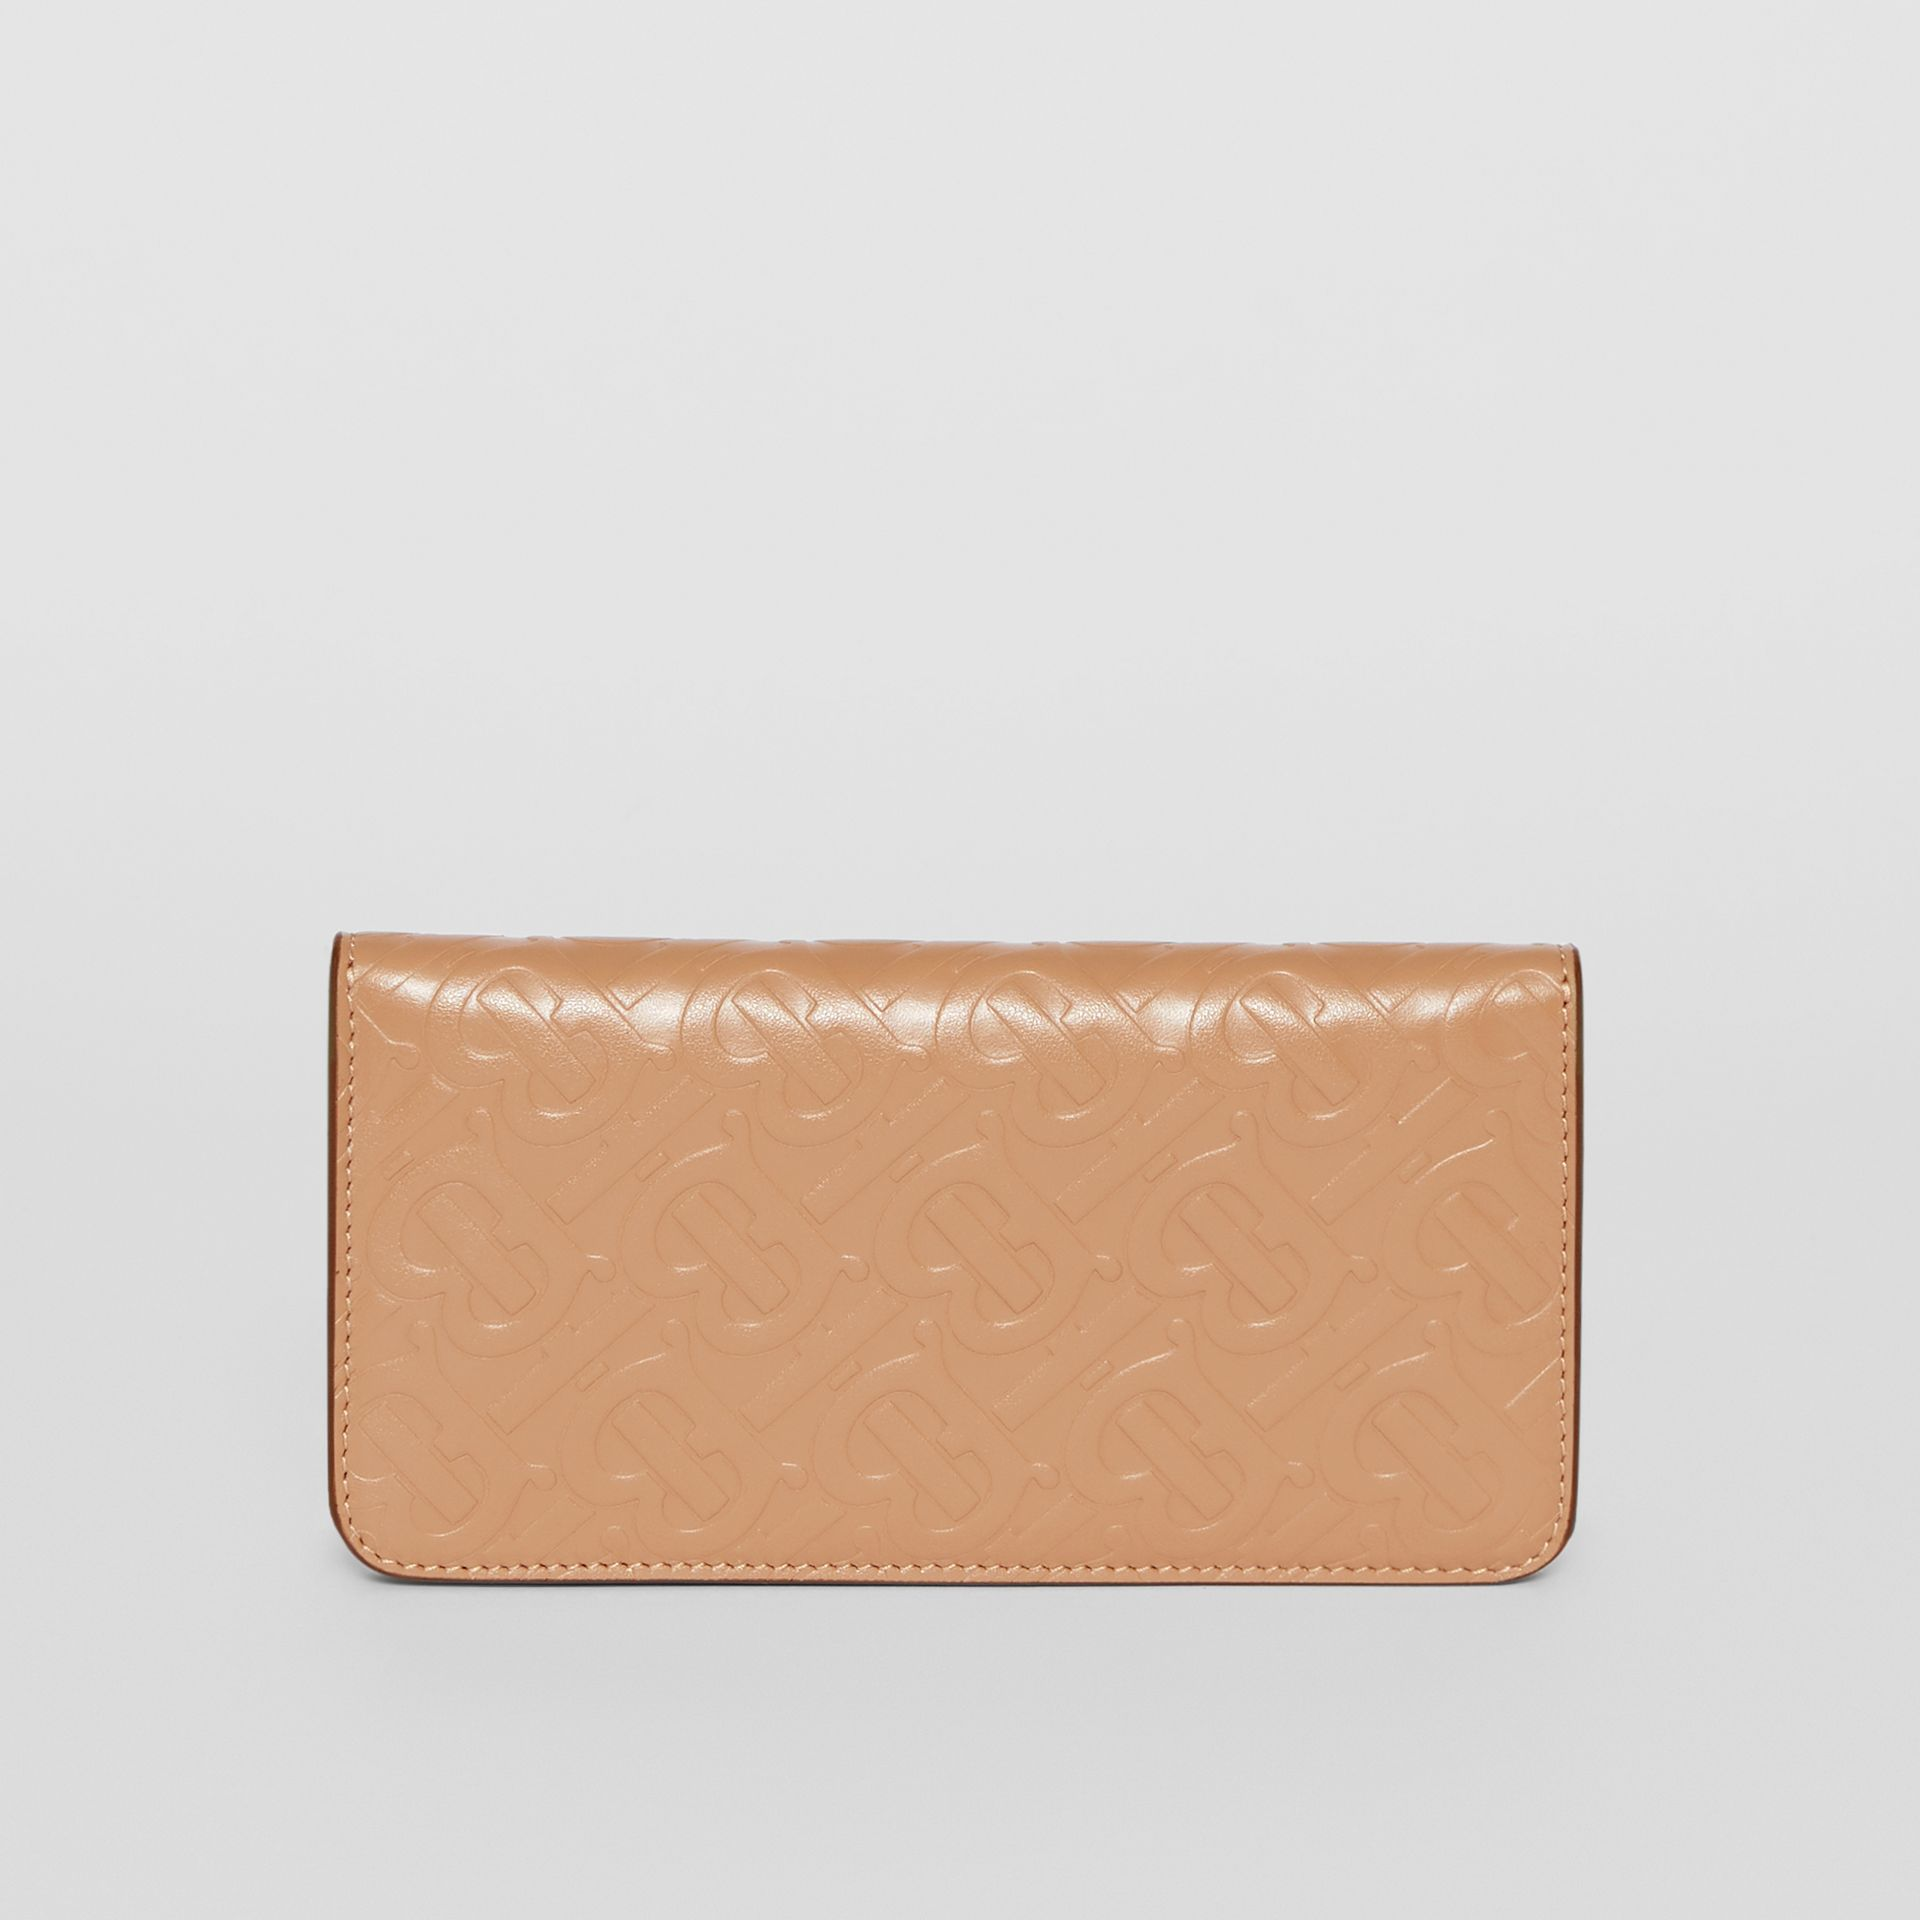 Monogram Leather Phone Wallet in Light Camel | Burberry Australia - gallery image 5